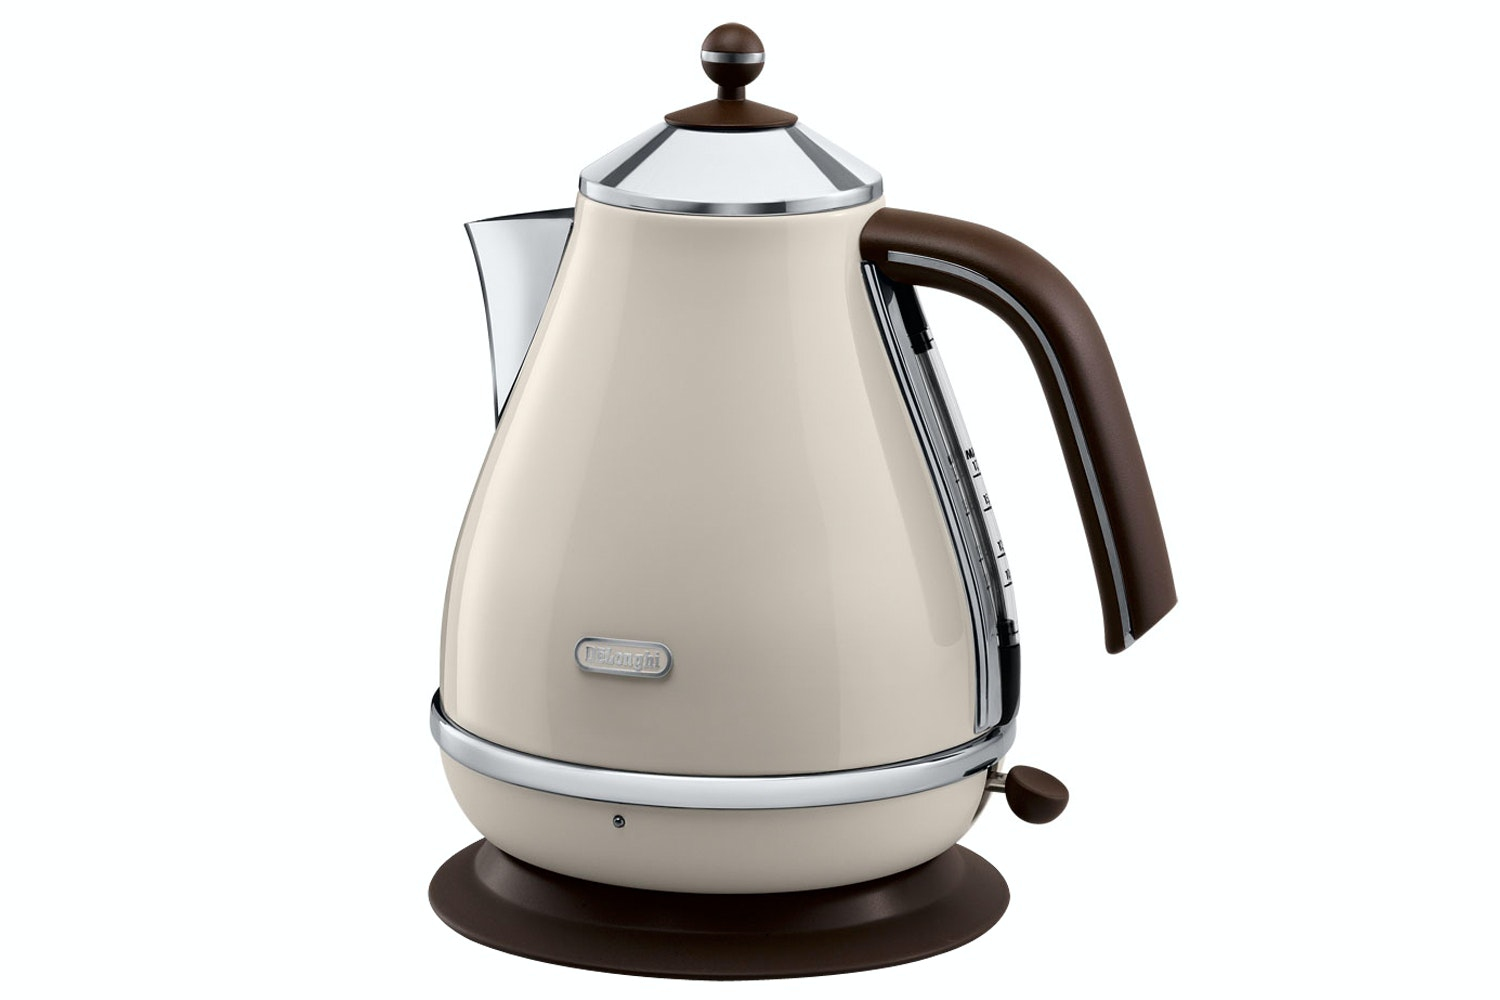 DeLonghi Vintage 1.7L Kettle | Cream